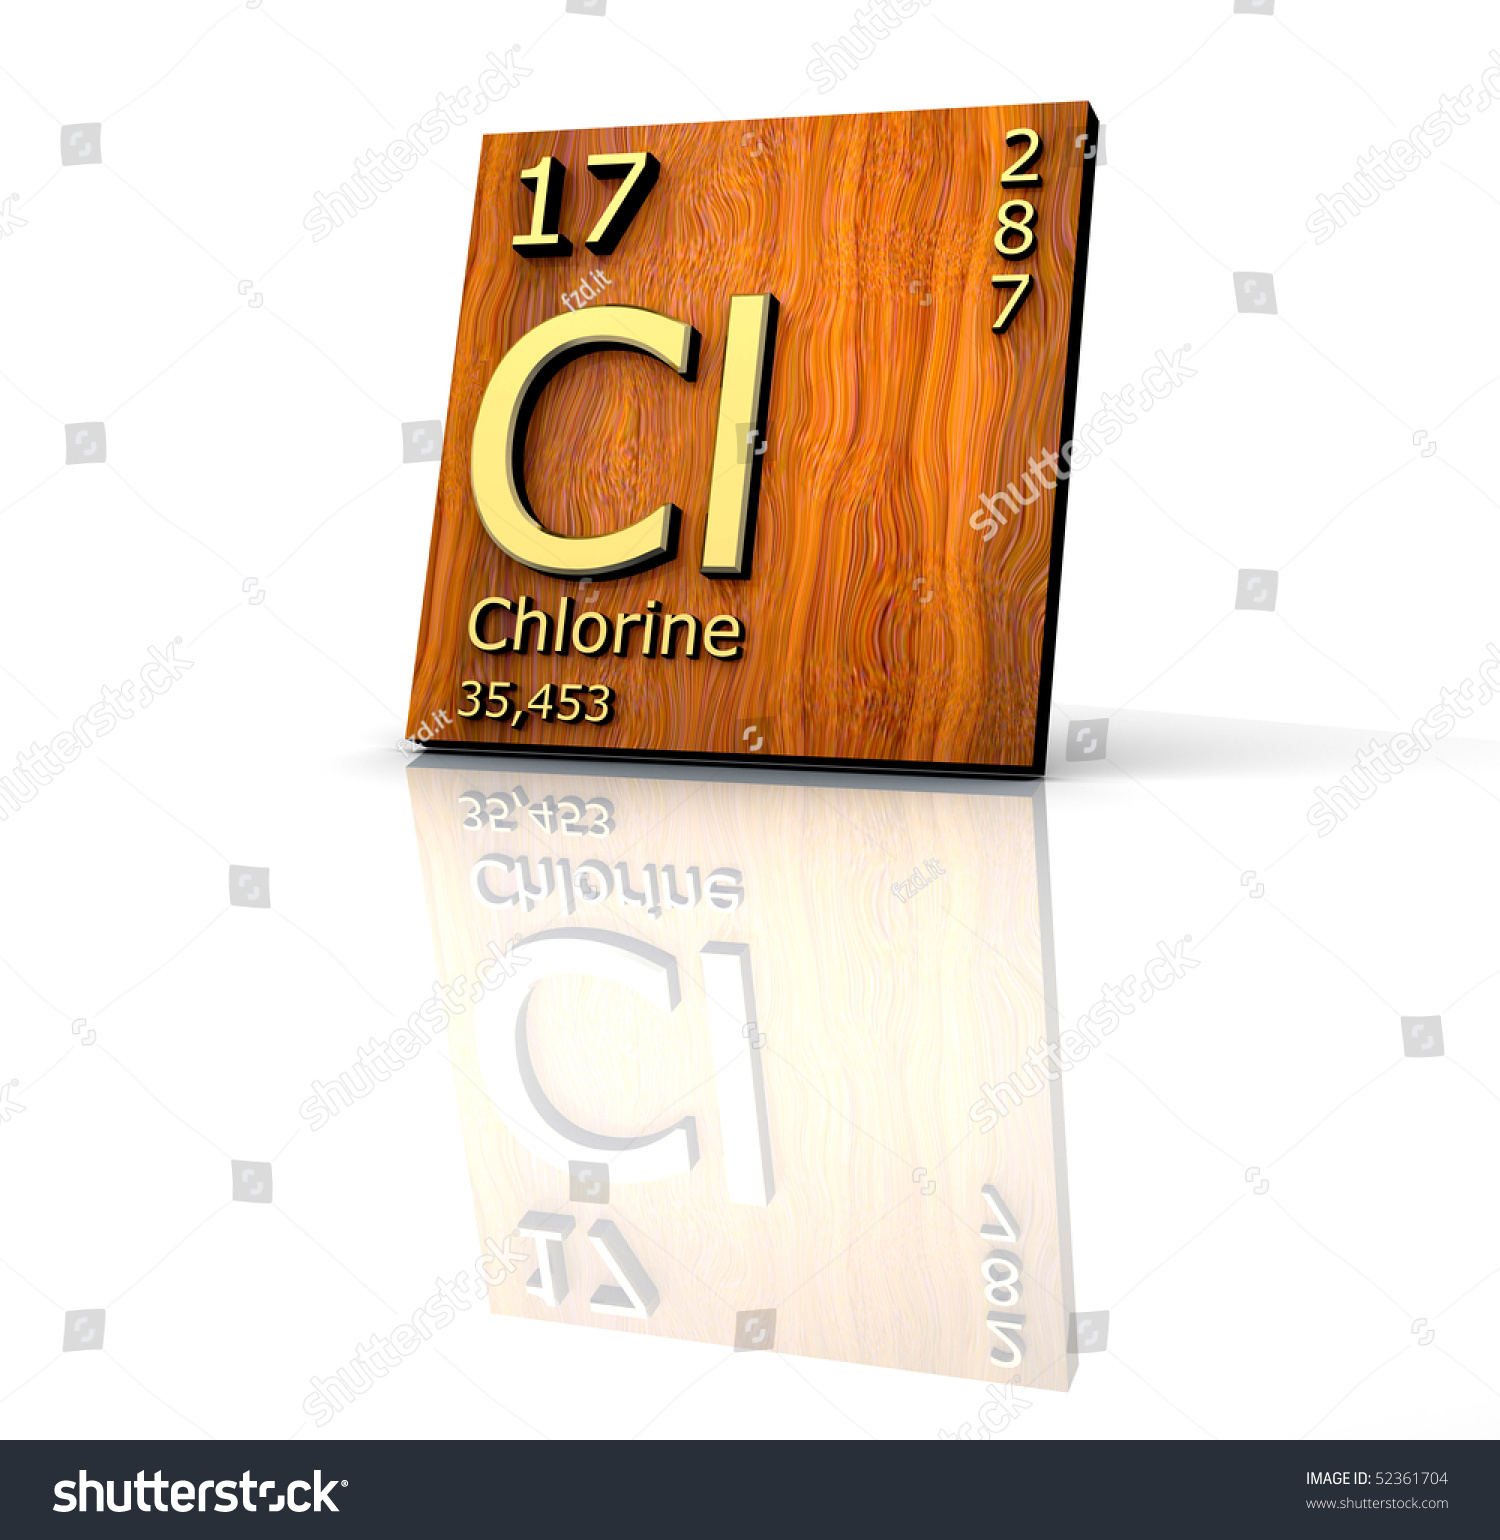 Periodic table for chlorine image collections periodic table images chlorine form periodic table elements wood stock illustration chlorine form periodic table of elements wood board gamestrikefo Gallery